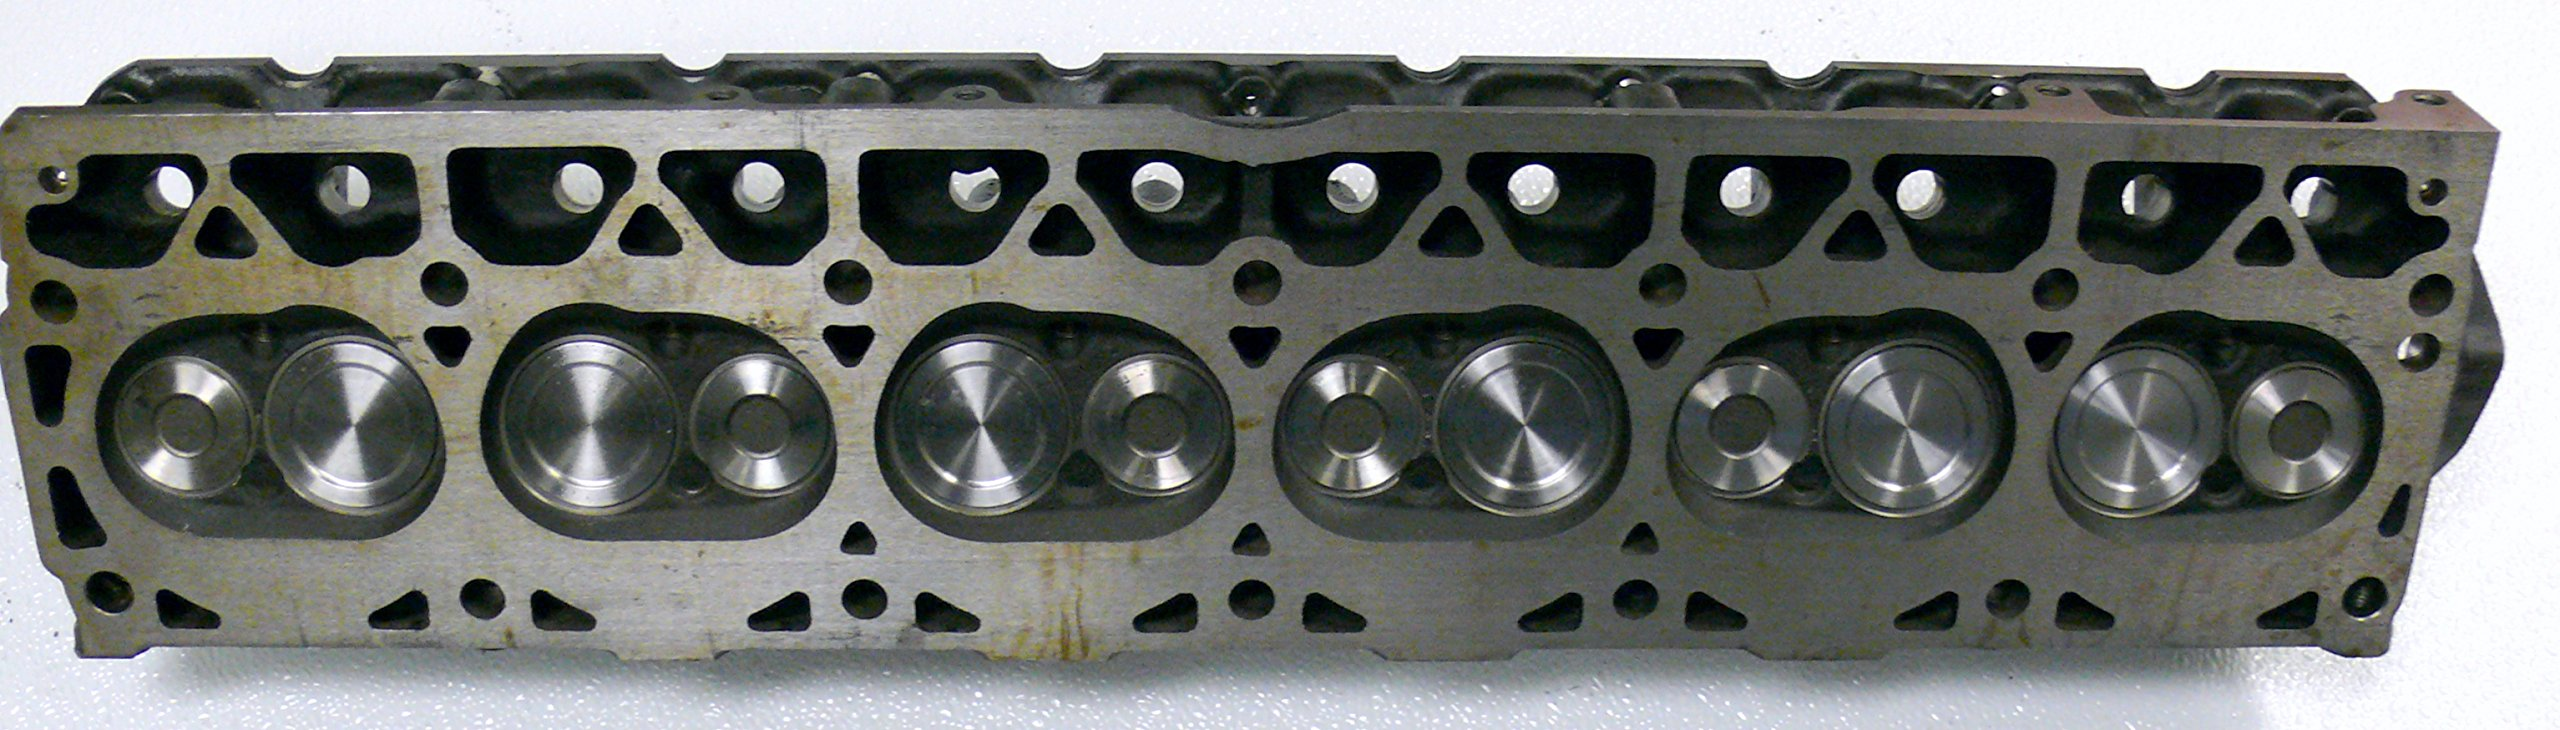 BRAND NEW JEEP CHEROKEE LAREDO 4.0 0331 CYLINDER HEAD   CHR238ZN U003c Cylinder  Heads U003c Automotive   TIBS